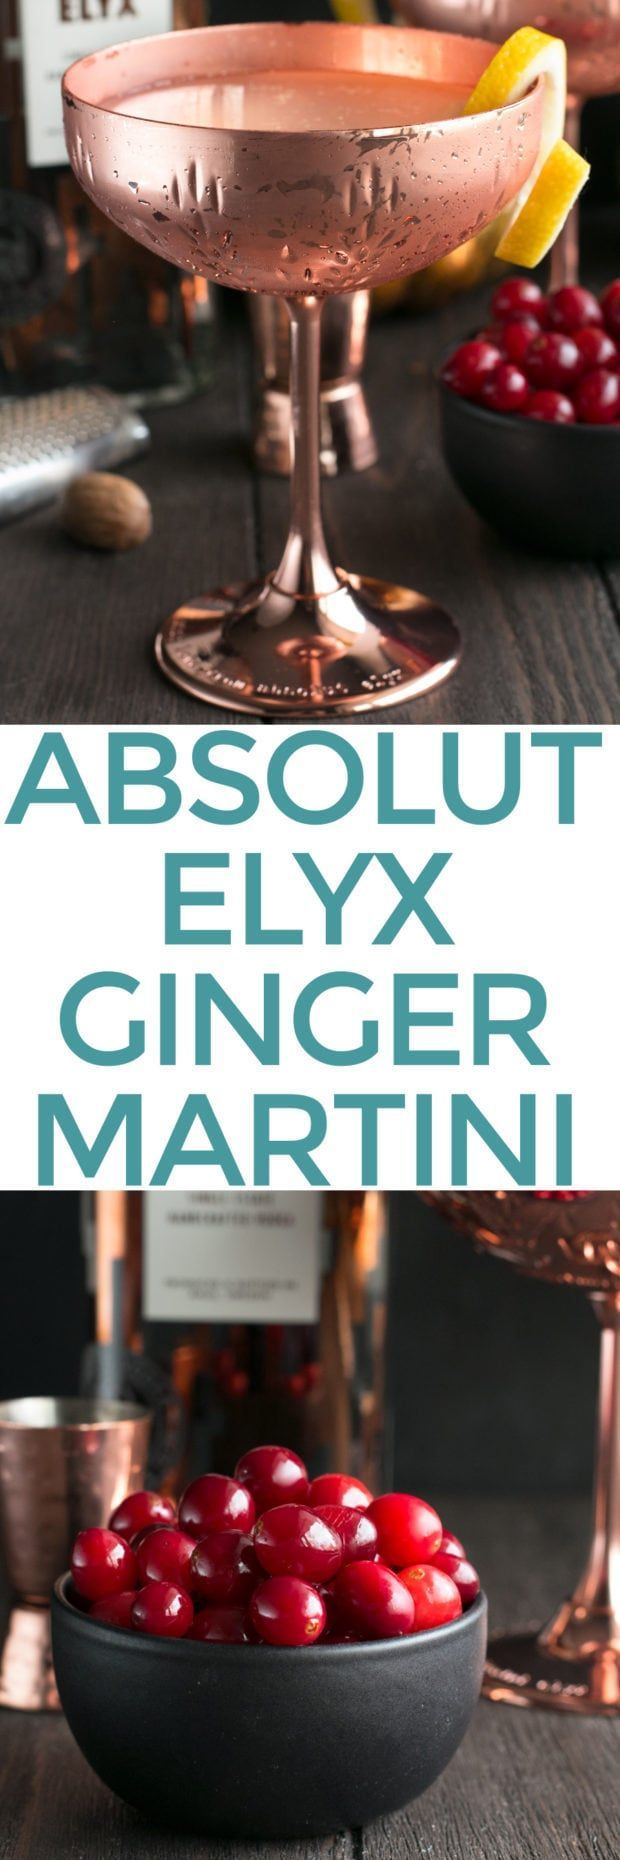 'Tis the season for holiday cocktails and an Absolut Elyx Ginger Martini with Drunken Cranberries is just the spicy, slightly sweet, and boozy drink you need to be whipping up. Garnished with cranberries soaked in brandy, this smooth cocktail brings festive cheer to any gathering! Absolut Elyx Ginger Martini with Drunken Cranberries | cakenknife.com #coppermakesitbetter #ad